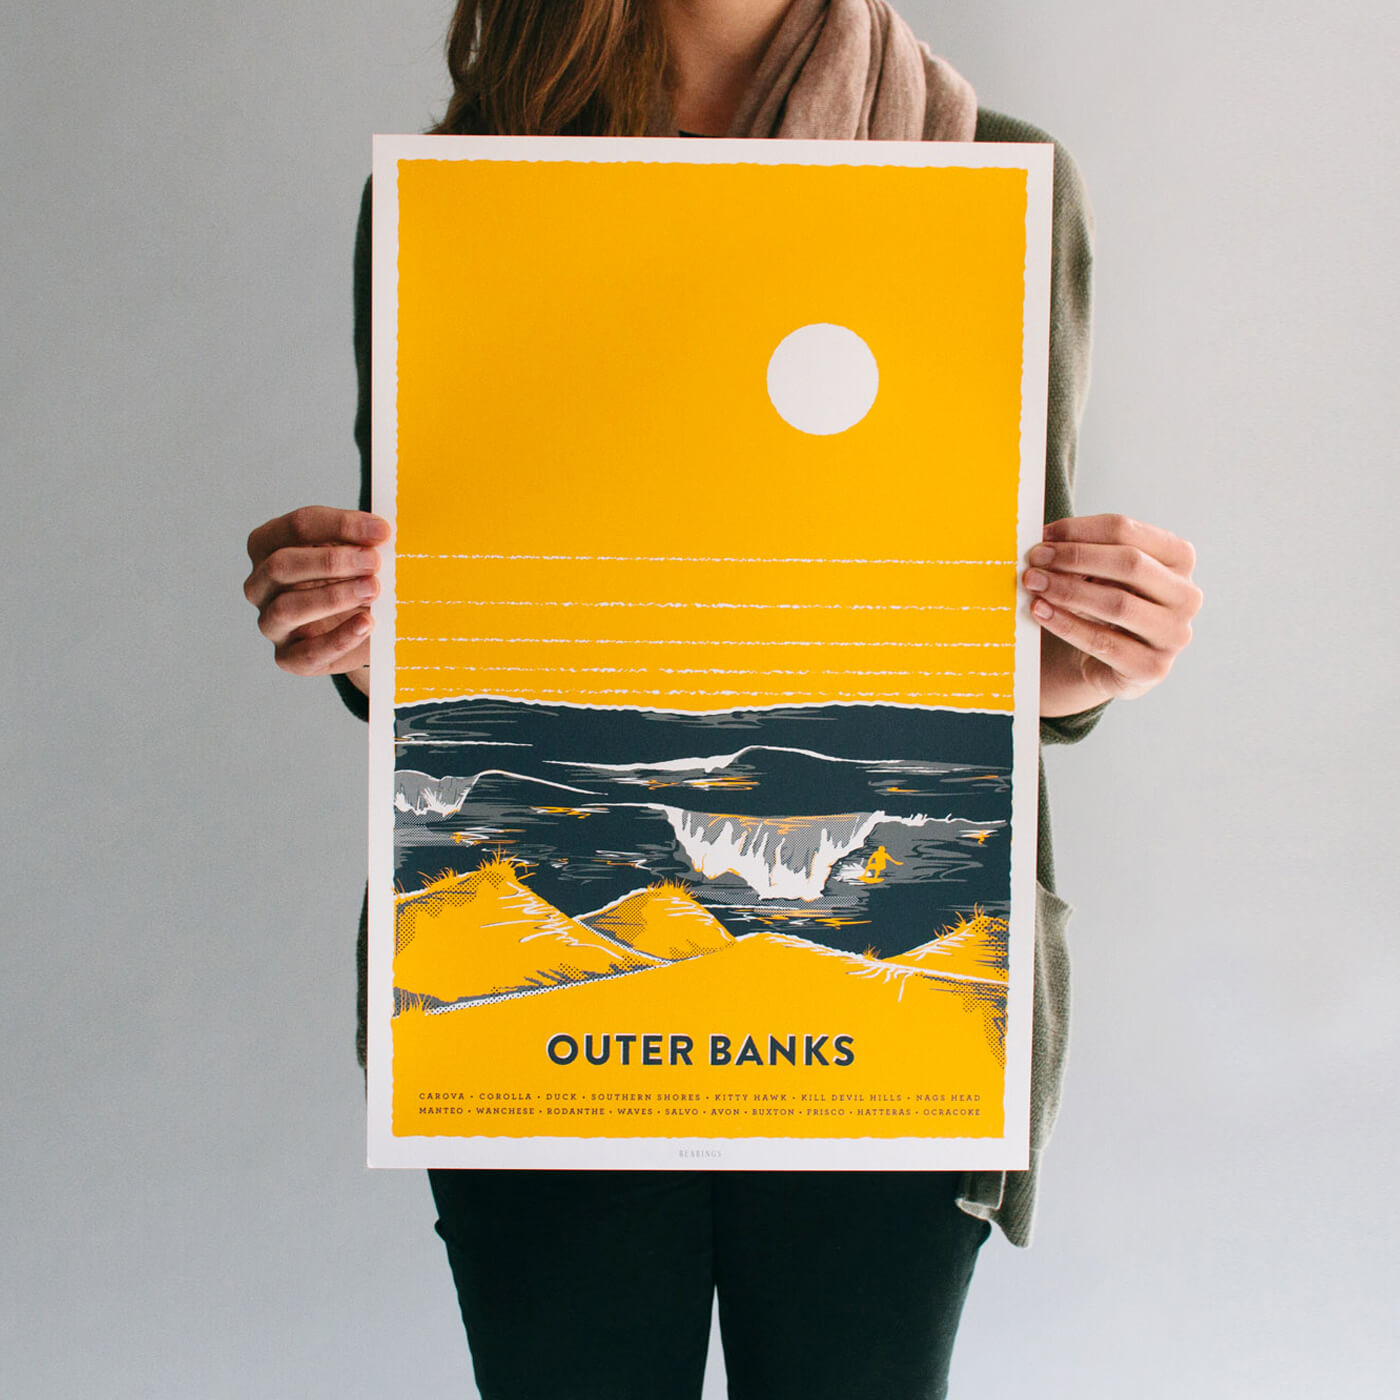 Outer Banks Poster Print - Three custom prints celebrating the essence of the North Carolina barrier islands: the tallest dunes and some of the best surfing on the East Coast.View Project →